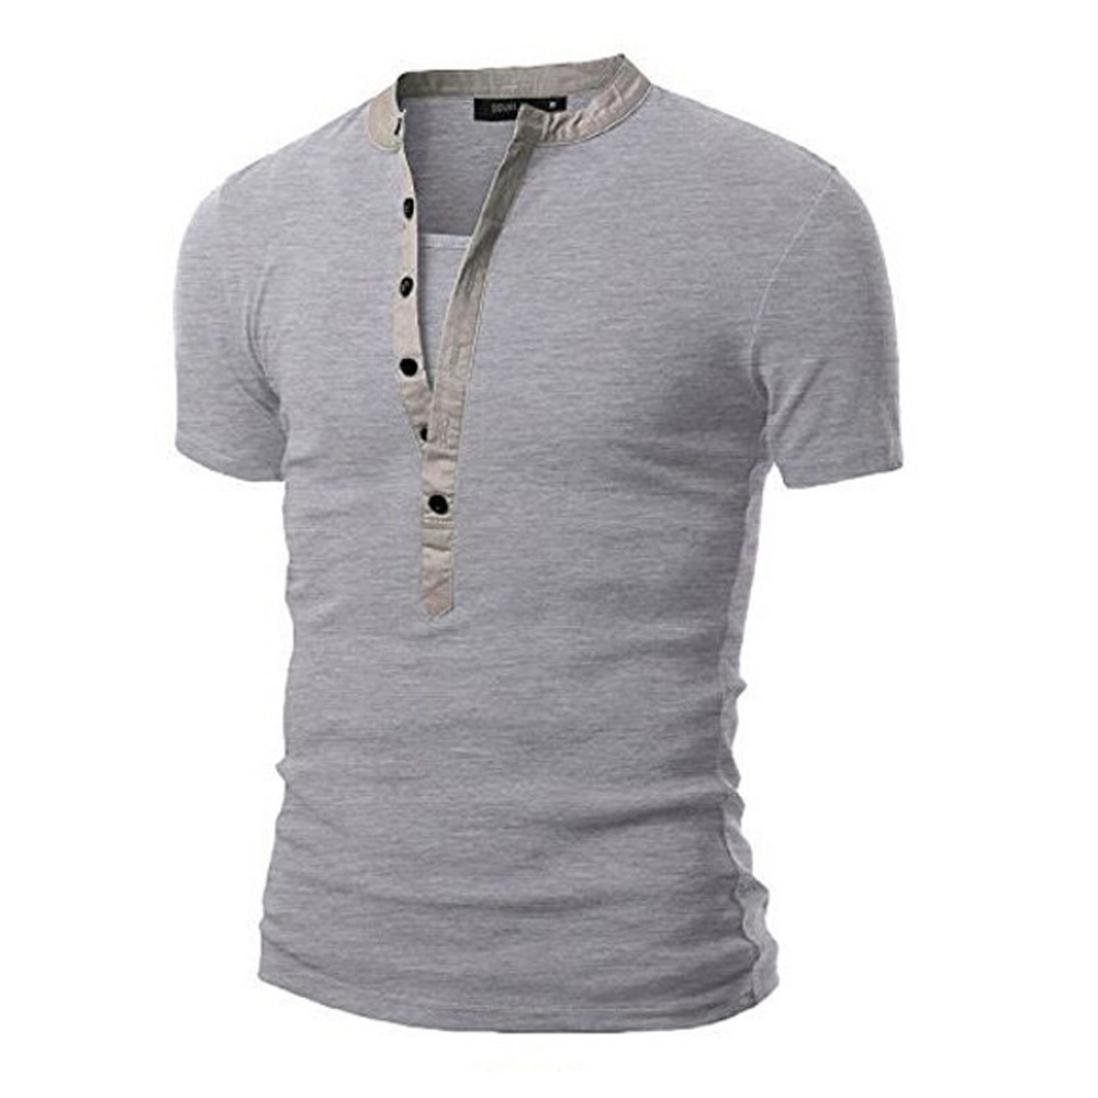 Challyhope Mens Casual Solid Patchwork Button V-Neck Short Sleeve Slim Henley T-Shirt